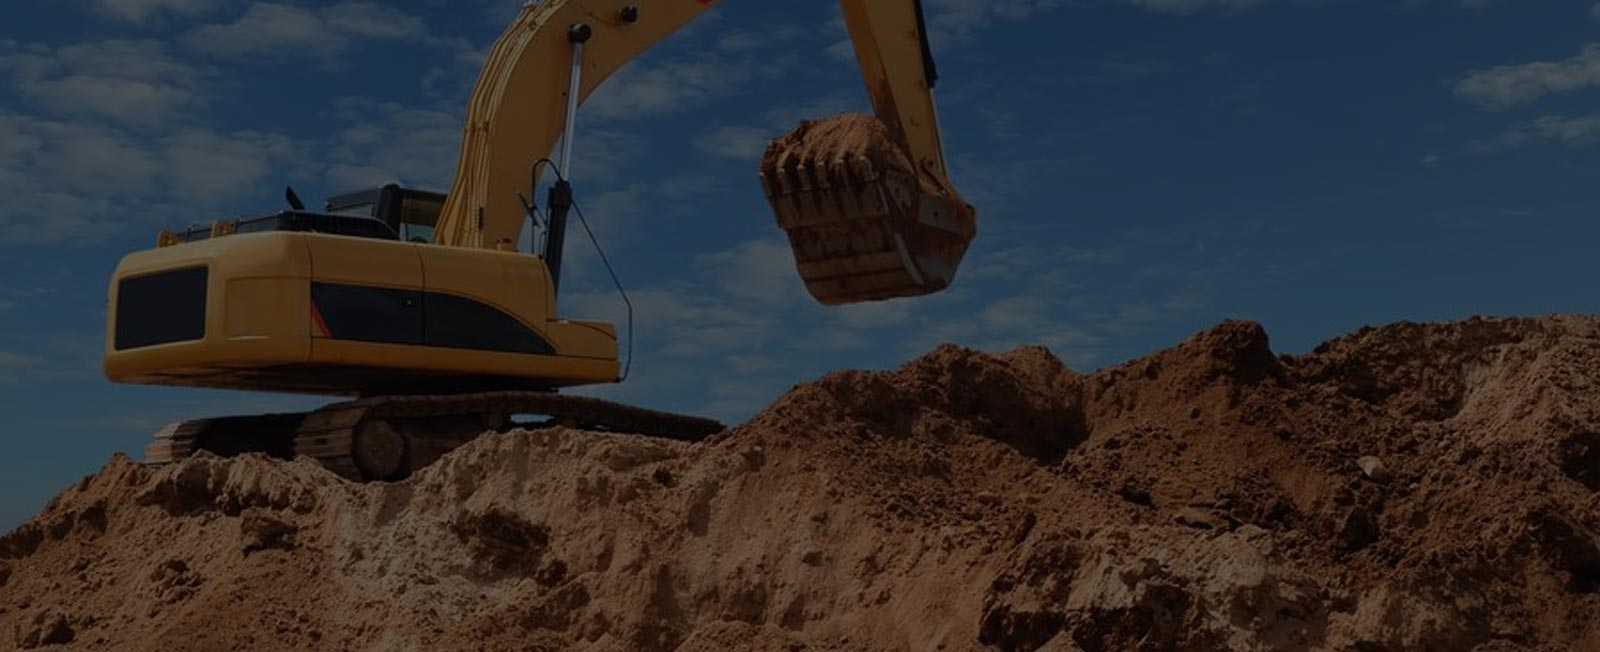 Plant hire in Melbourne